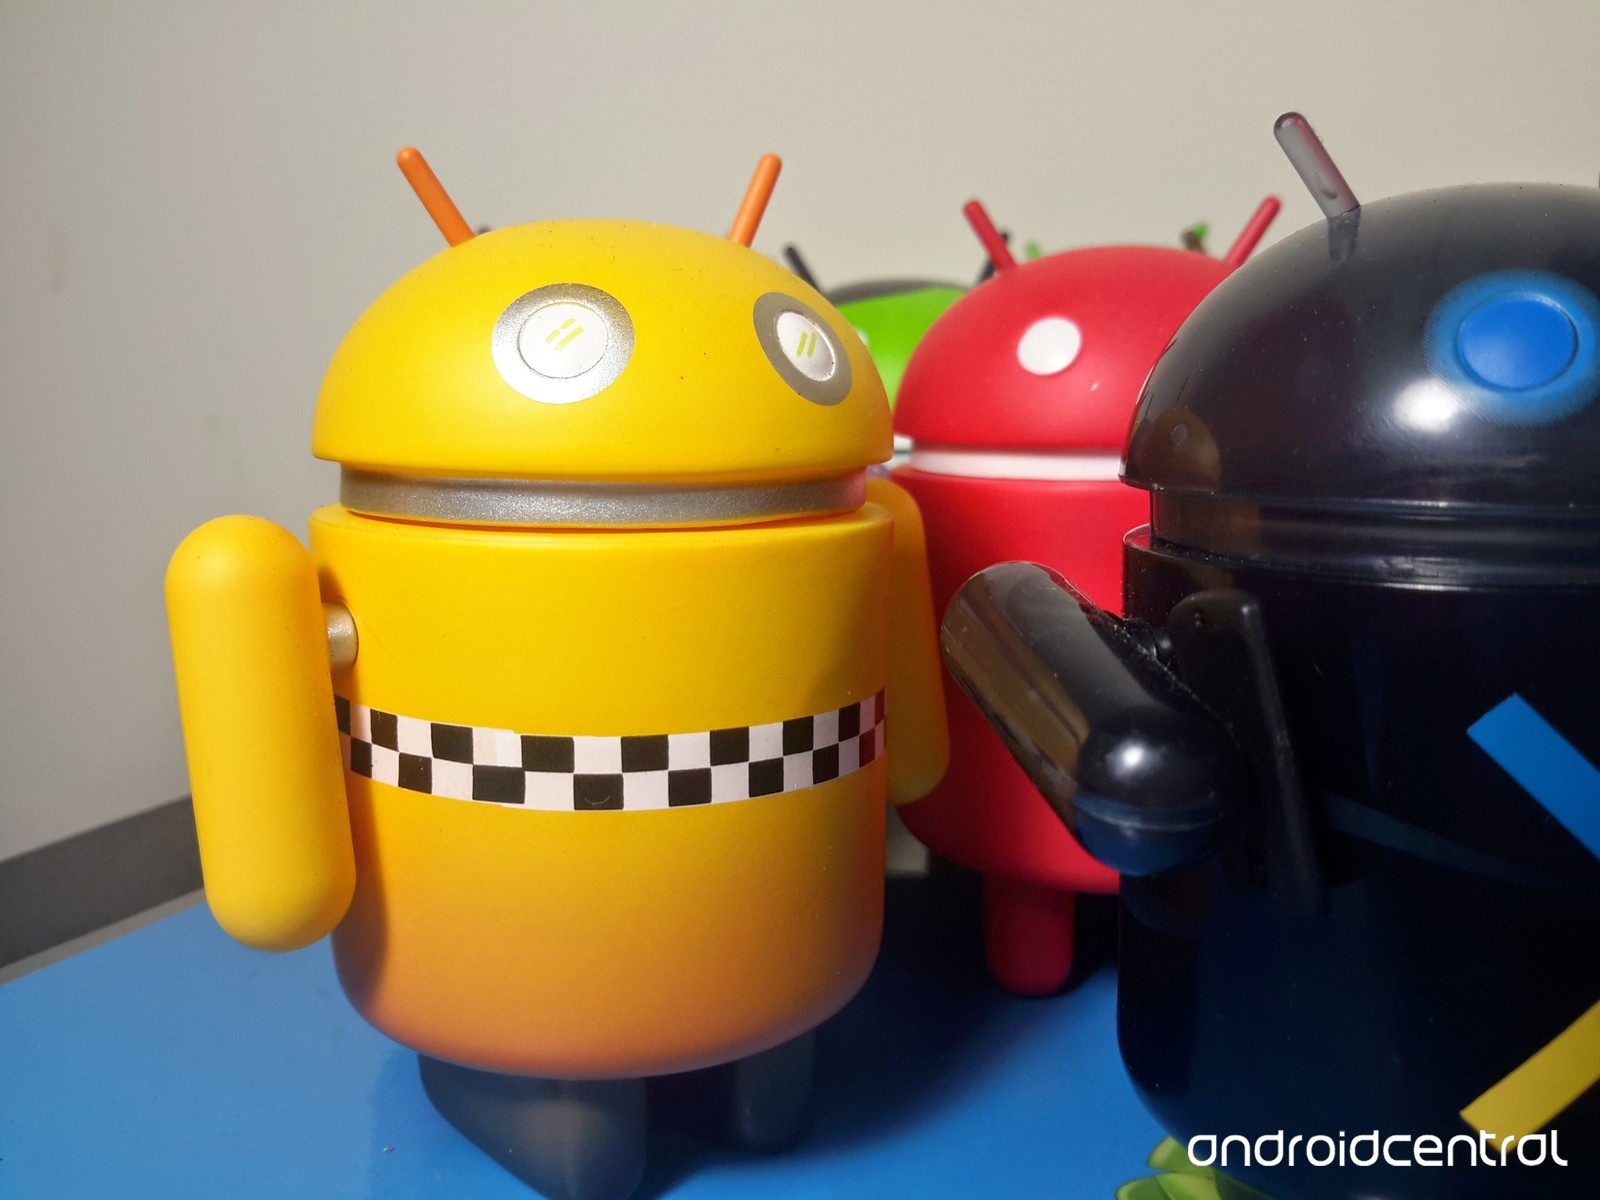 https://www.androidcentral.com/sites/androidcentral.com/files/styles/xlarge_wm_brw/public/article_images/2016/08/Android-figures.jpg?itok=JOwVsINE